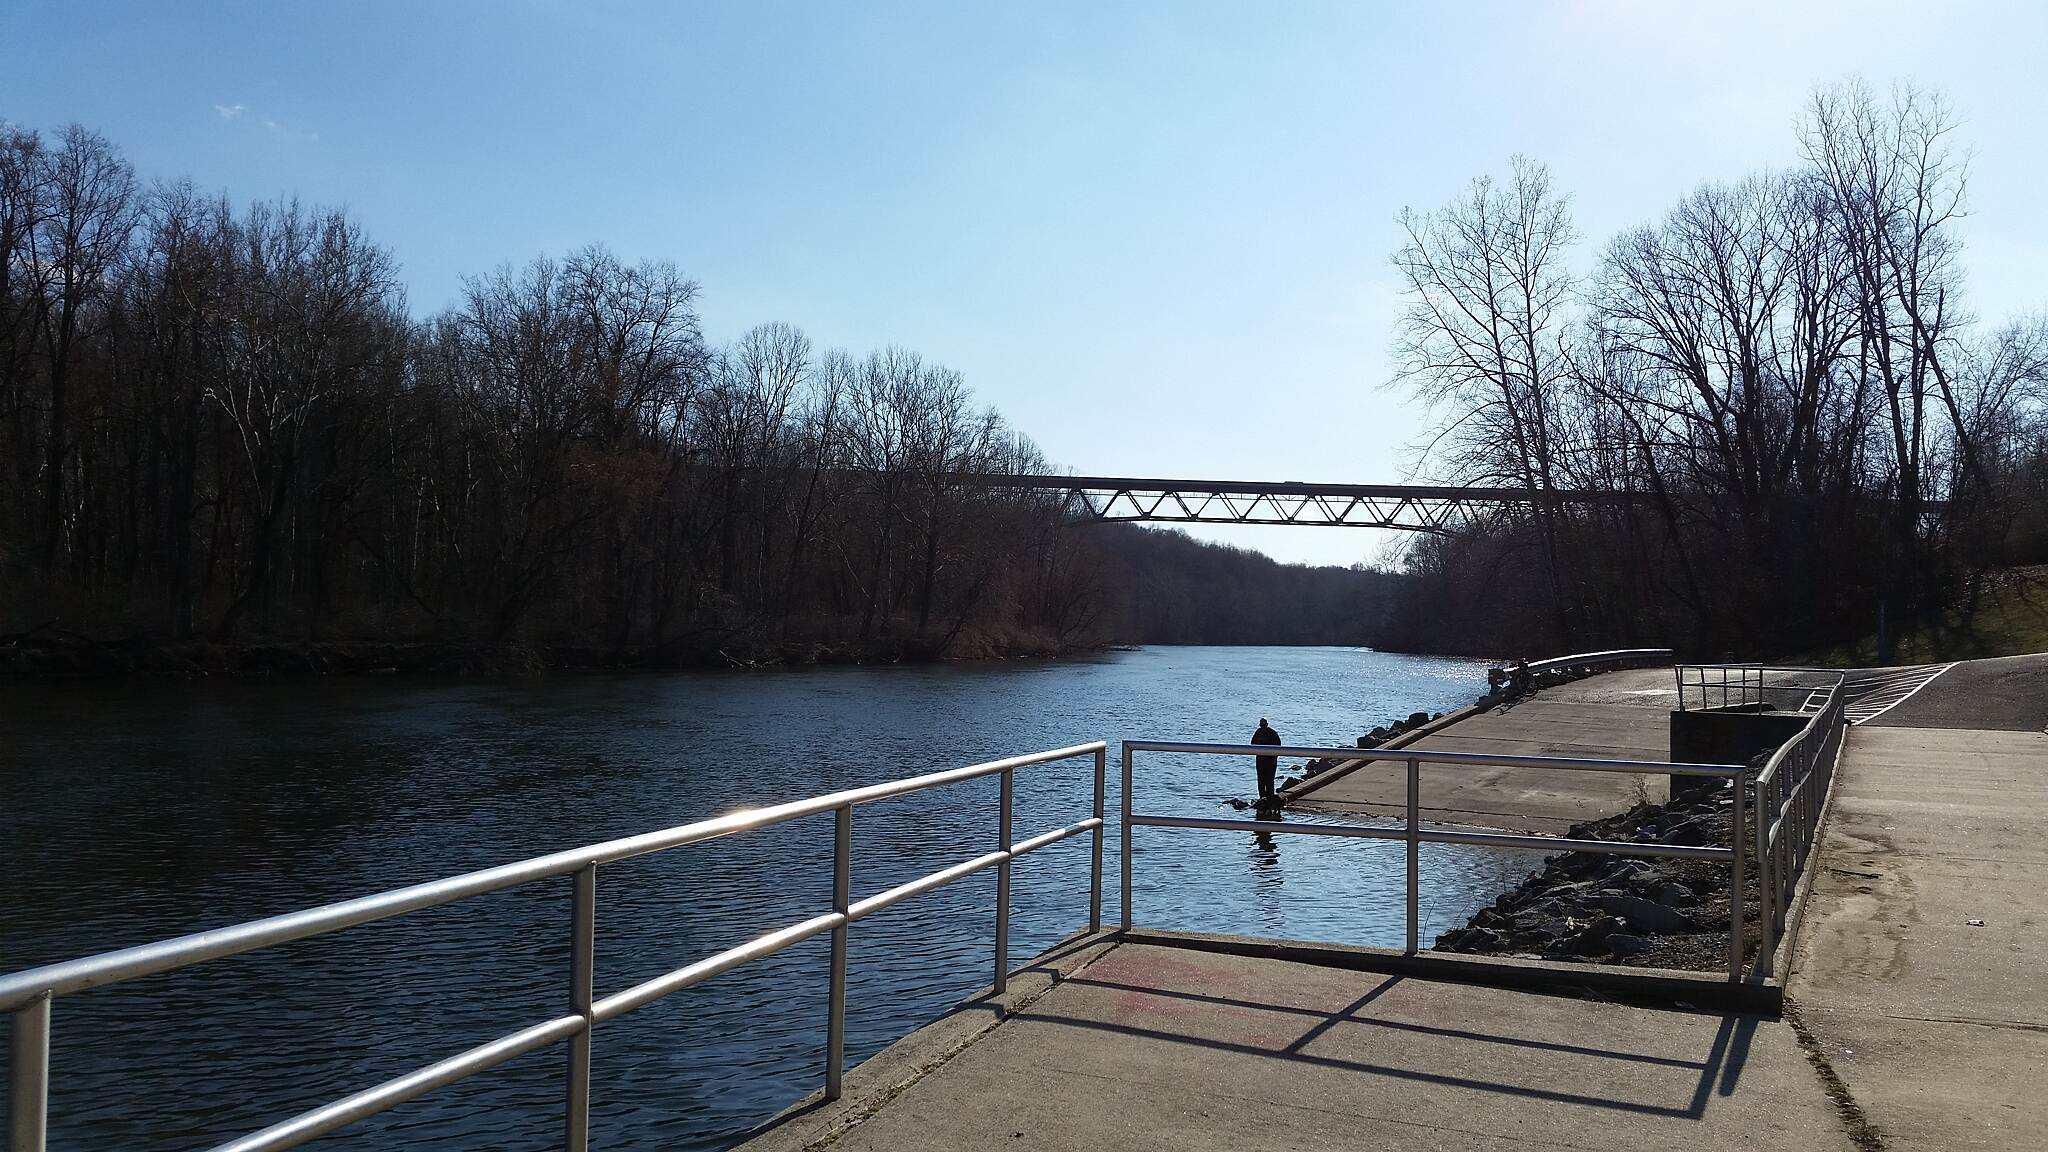 Palmer Township Recreation Trail (Towpath Bike Trail) Boat access area